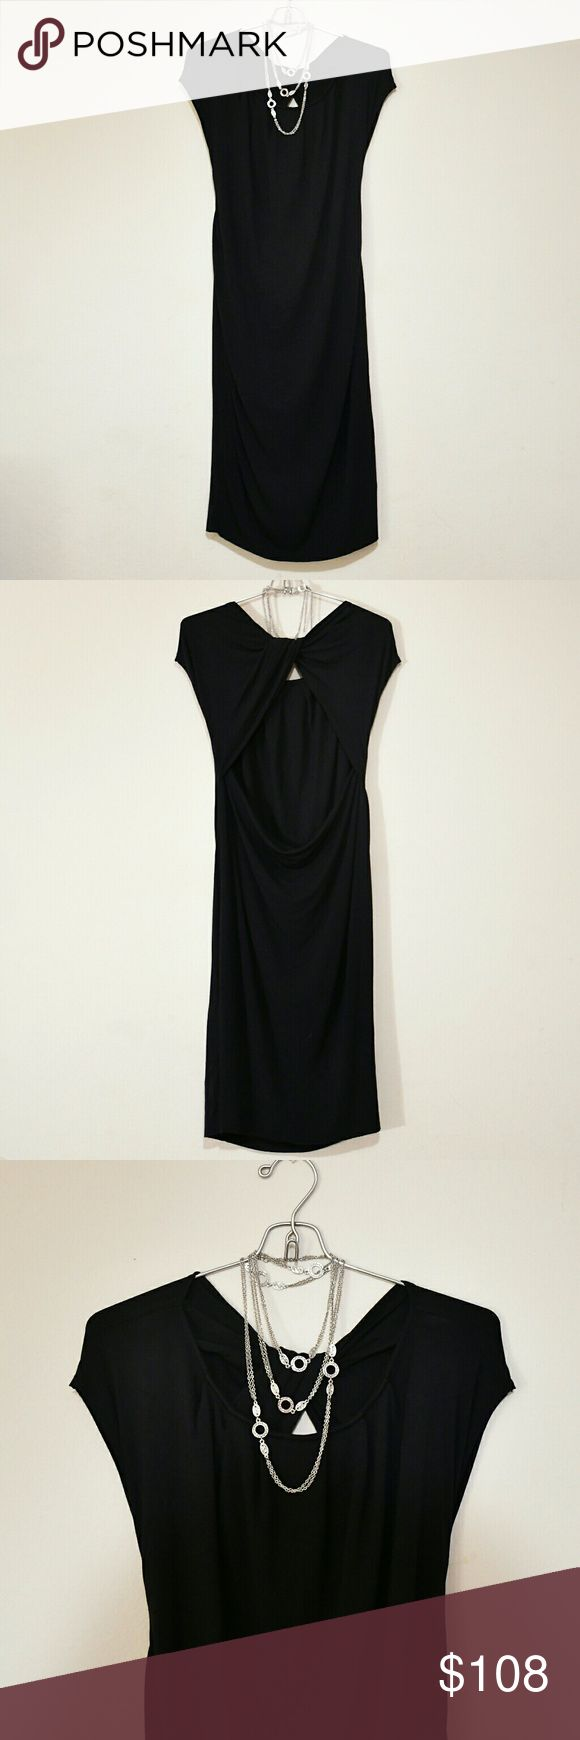 Robert Rodriguez Black Dress ~ S Stunning Robert Rodriguez Black Dress with twisted cut-out back ~ Size Small. Hemline hits just at or below knee Excellent condition (a couple loose threads at shoulder, stitching not affected). This is such a gorgeous piece with a delicately draping silhouette that accentuates in all the right places.   Offers encouraged! Robert Rodriguez Dresses